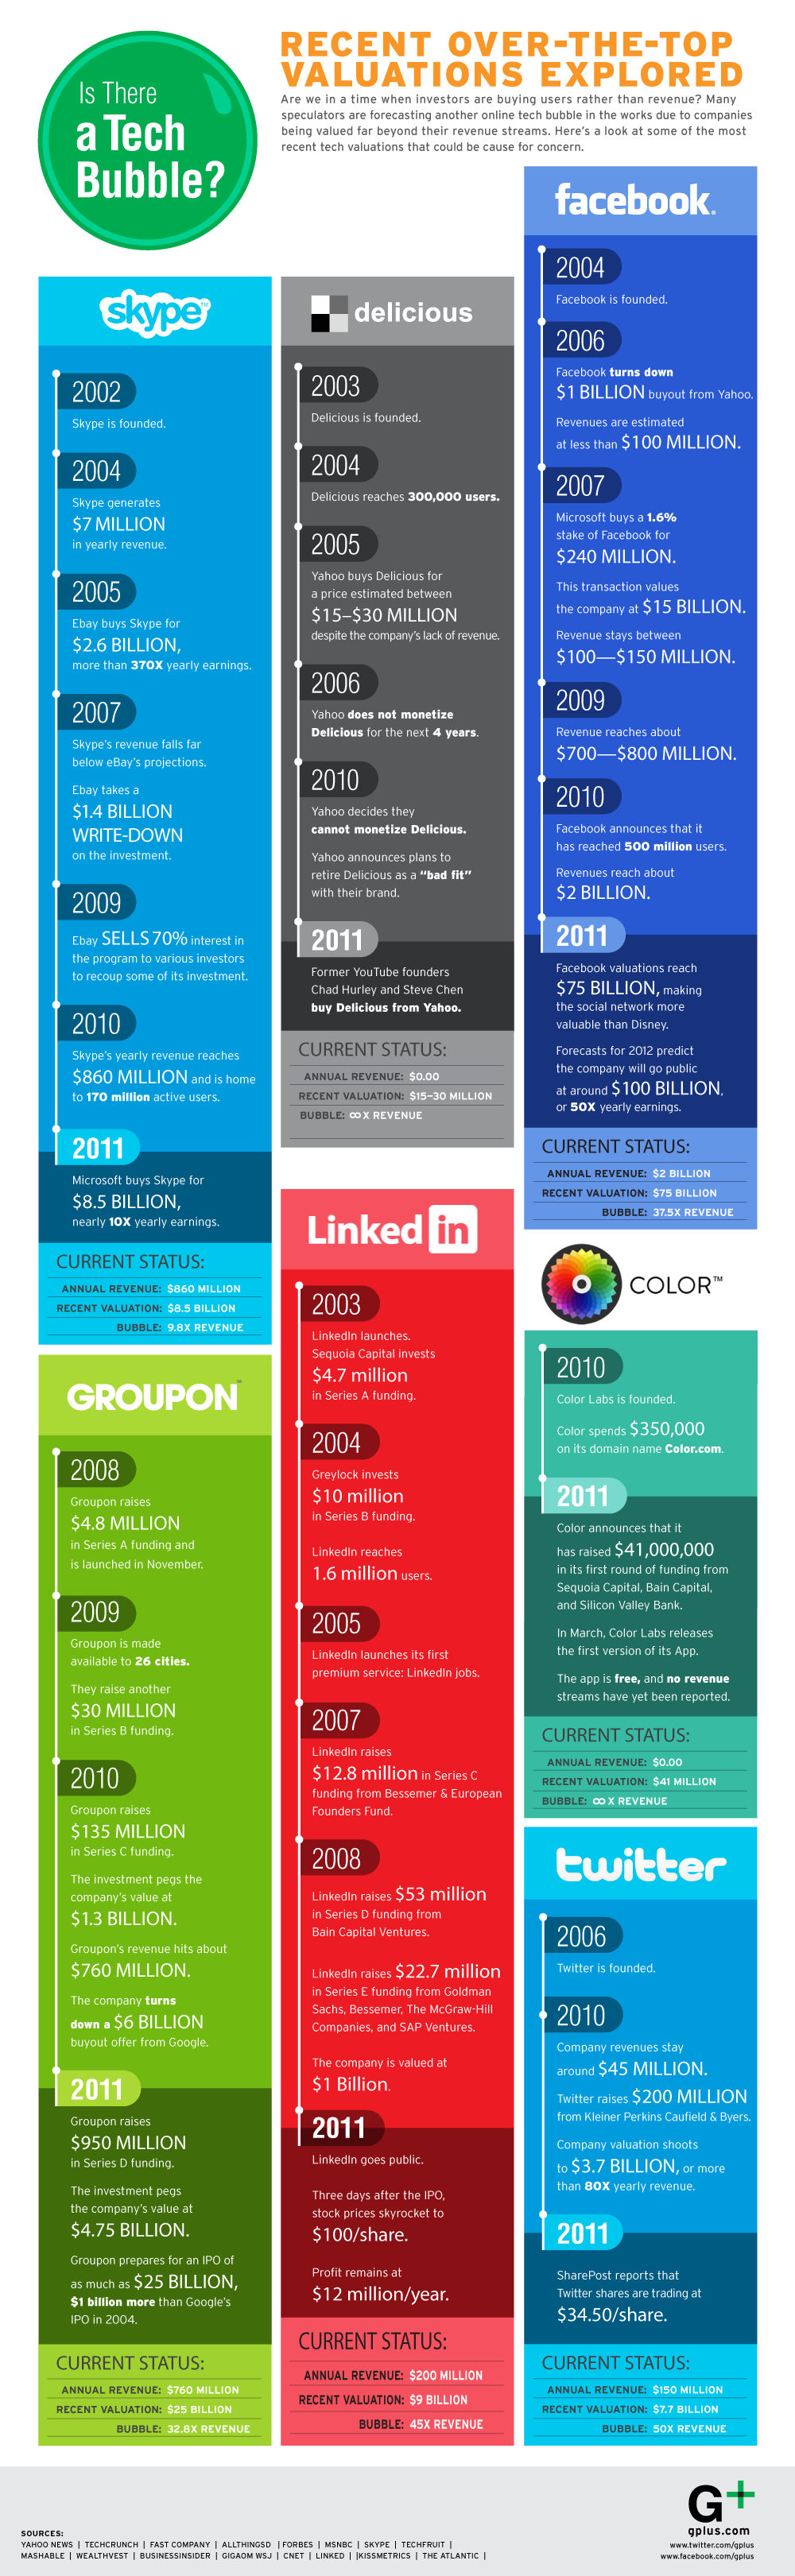 Valuations of tech stocks Skype, Delicious, Facebook, Groupon, LinkedIn, Color, Twitter